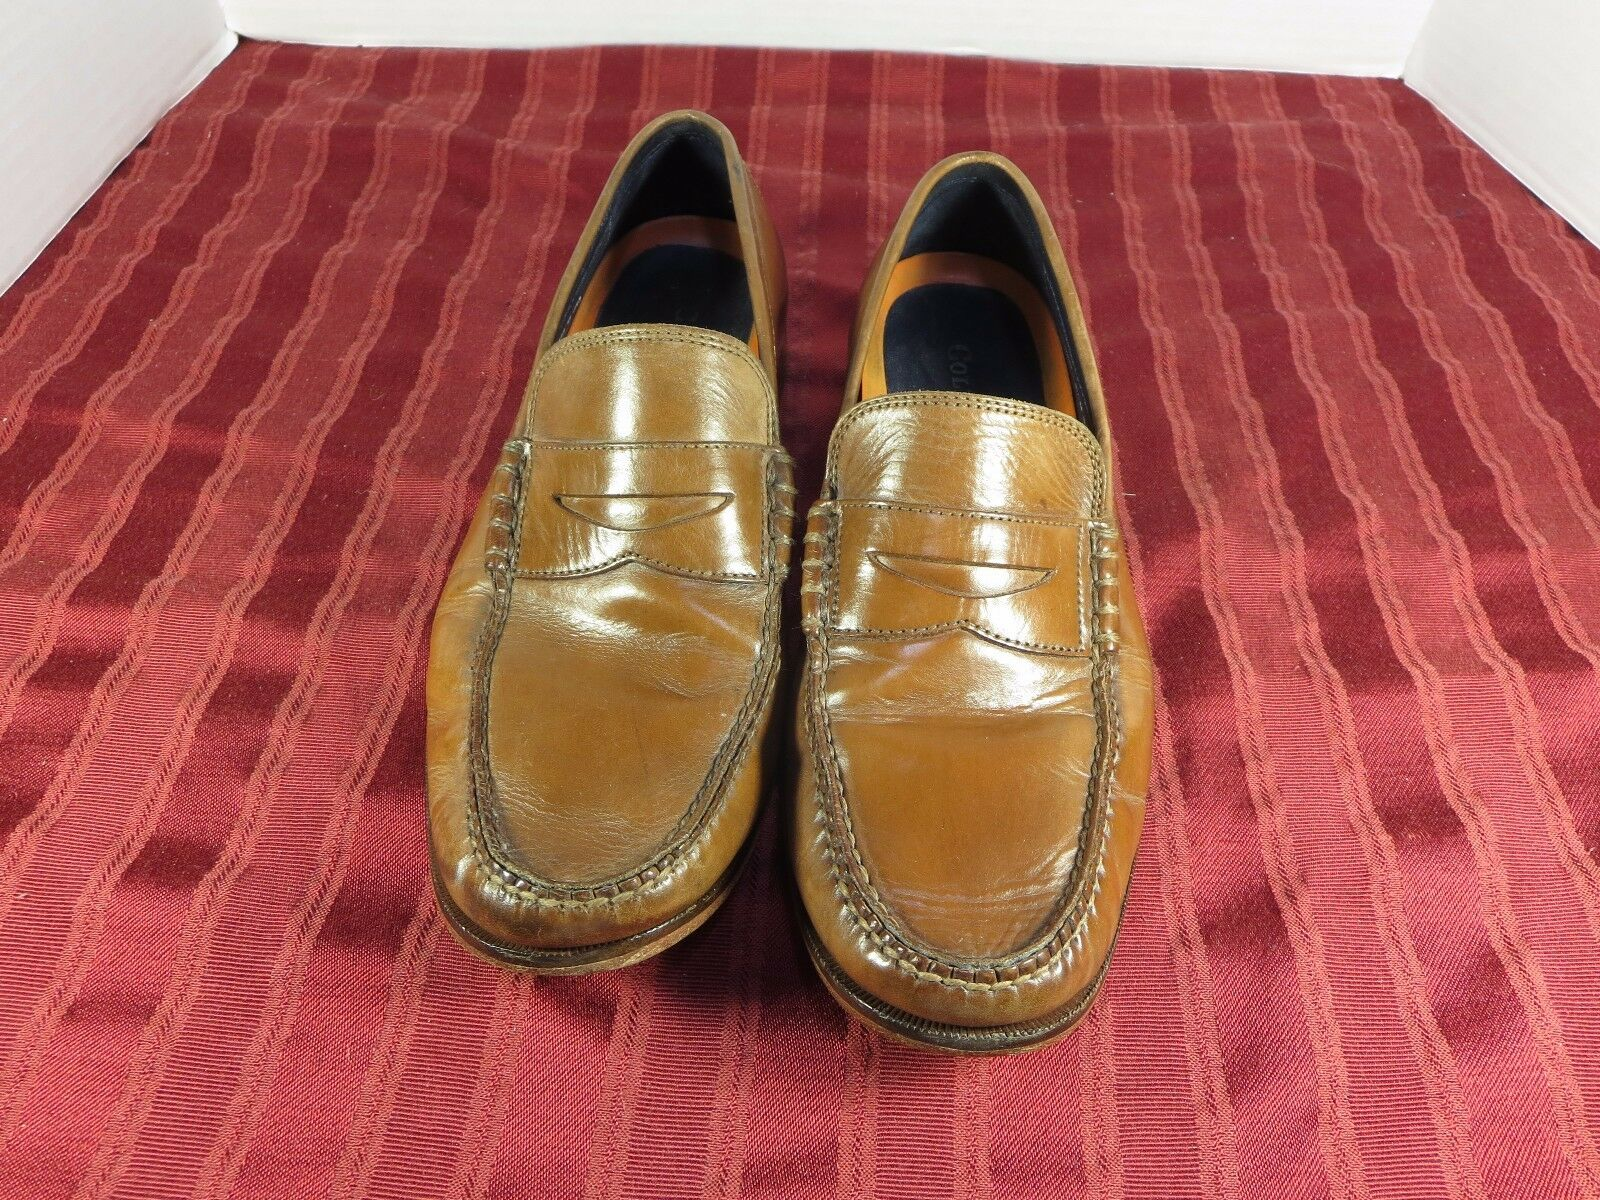 Cole Haan Brown Leather Penny Loafers Casual Dress shoes Men Size 8.5 M